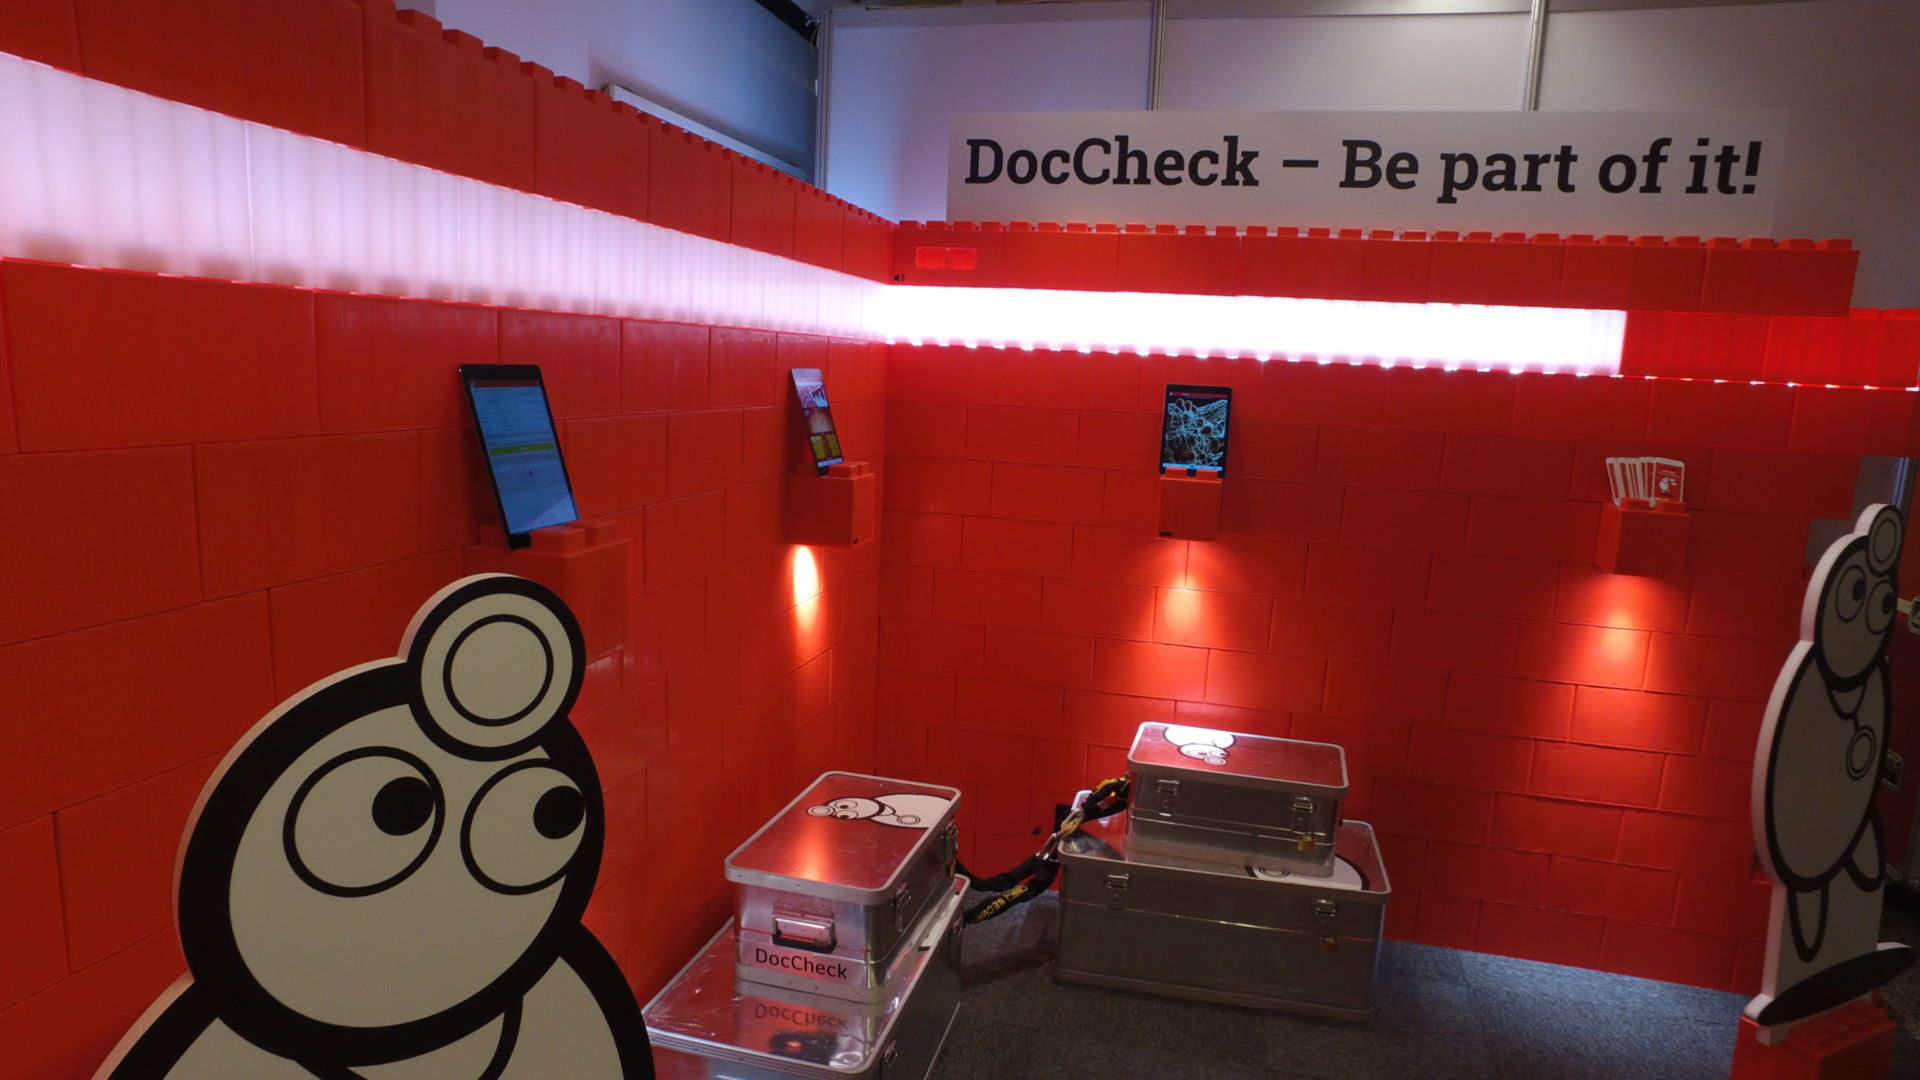 The DocCheck booth: Gallery 613 (first level)